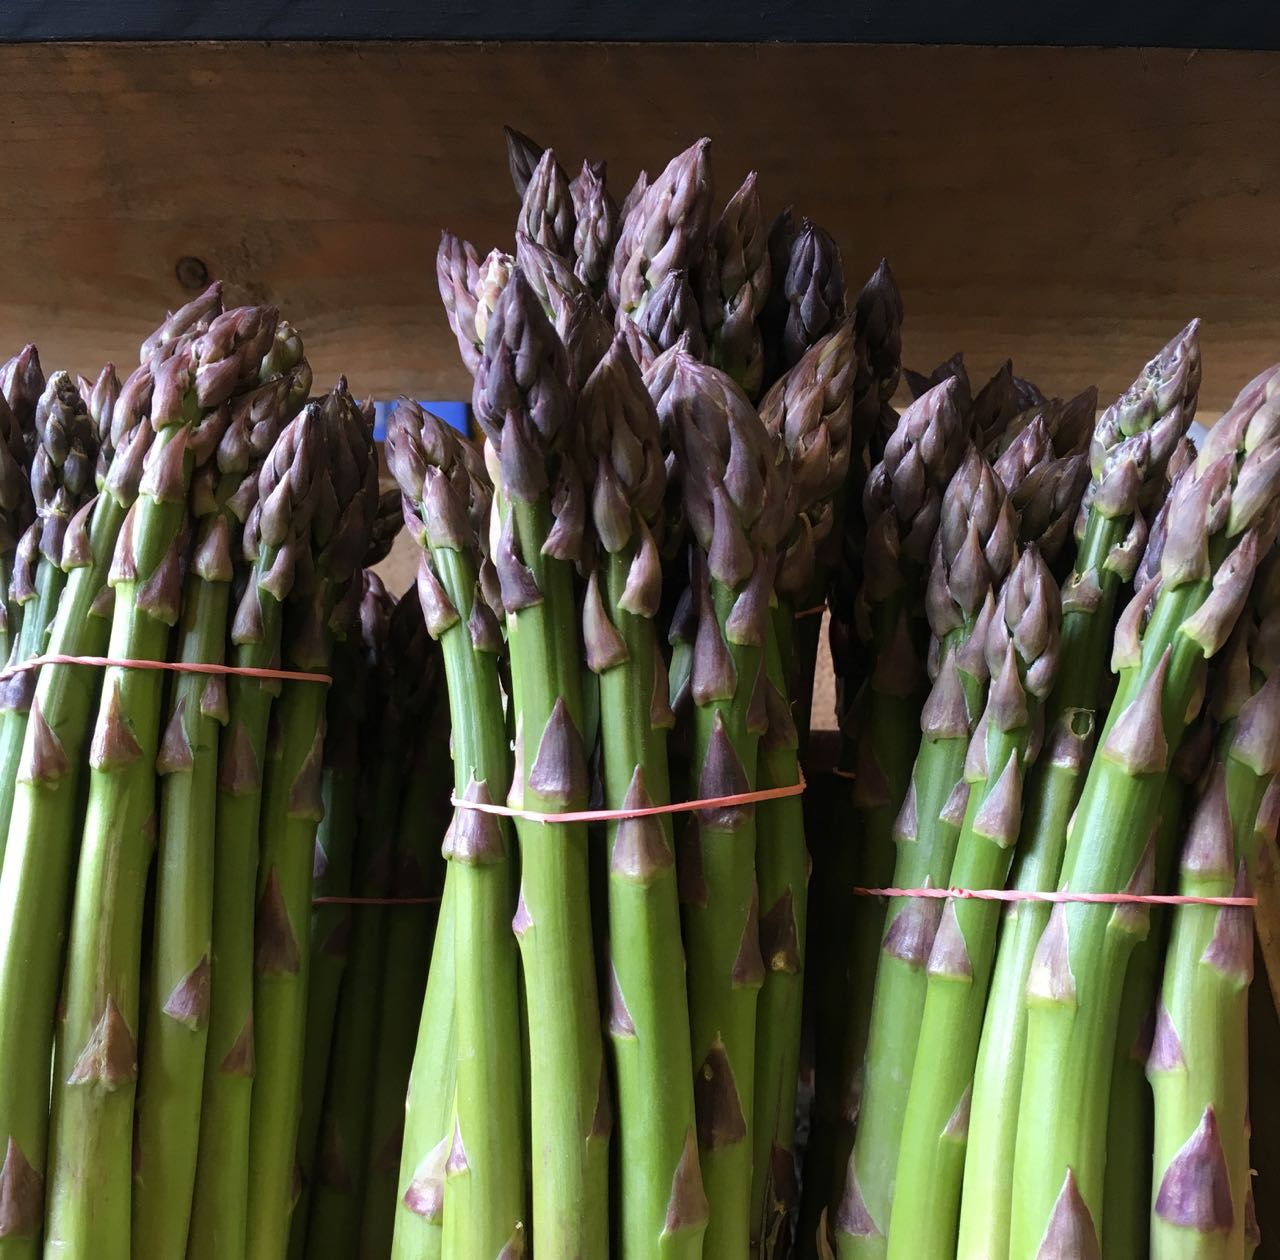 English Green   Asparagus    Photo ©Evie Saffron Strands      Asparagus      Asparagus  grows from long-lived rhizomes that spread underground. The spears are the tender young shoots of  Asparagus officinalis  that grows into a fernlike plant over a metre tall when harvesting ends.    The spears start pushing through the ground in early Spring. In recent years, a variety of 'early-season' asparagus has been developed enabling some producers to get an Asparagus crop to market ahead of the game. Normally, the asparagus farmer has a few weeks of frantic activity harvesting the crop for market, and then it's all over until next year. Traditionally, in the UK, the season begins around St George's Day (23 April) and by mid-Summer's Day cutting should stop. The plants continue to put up spears but these are allowed to grow into tall fronds that photosynthesise in order to build up nutrients in the rhizome for next year's crop. In November the plant is cut back to ground level.     It takes about three years for an asparagus crown to become established and, if treated right, it can be productive for 10 years. Harvesting of Asparagus has to be done by hand. The white version is even more labour intensive as the growing spears have to be banked-up with soil to produce the blanched stems. Popular since the 18th century, white asparagus has a more delicate flavour than the green. If exposed to light after harvest, white asparagus will turn yellow or reddish. Purple varieties of asparagus are high in anthocyanins, though, like other purple and red coloured vegetables, cooking results in loss of this colour and it turns green.    This all adds up to making asparagus one of the most expensive treats of spring and early summer. Freshness is key to taste so, when you do finally get your hands on it, don't let it linger in the fridge or it will lose its sweetness. The spears are packed with beneficial nutrients - vitamins A and C, folic acid, potassium and iron. They have a natural s